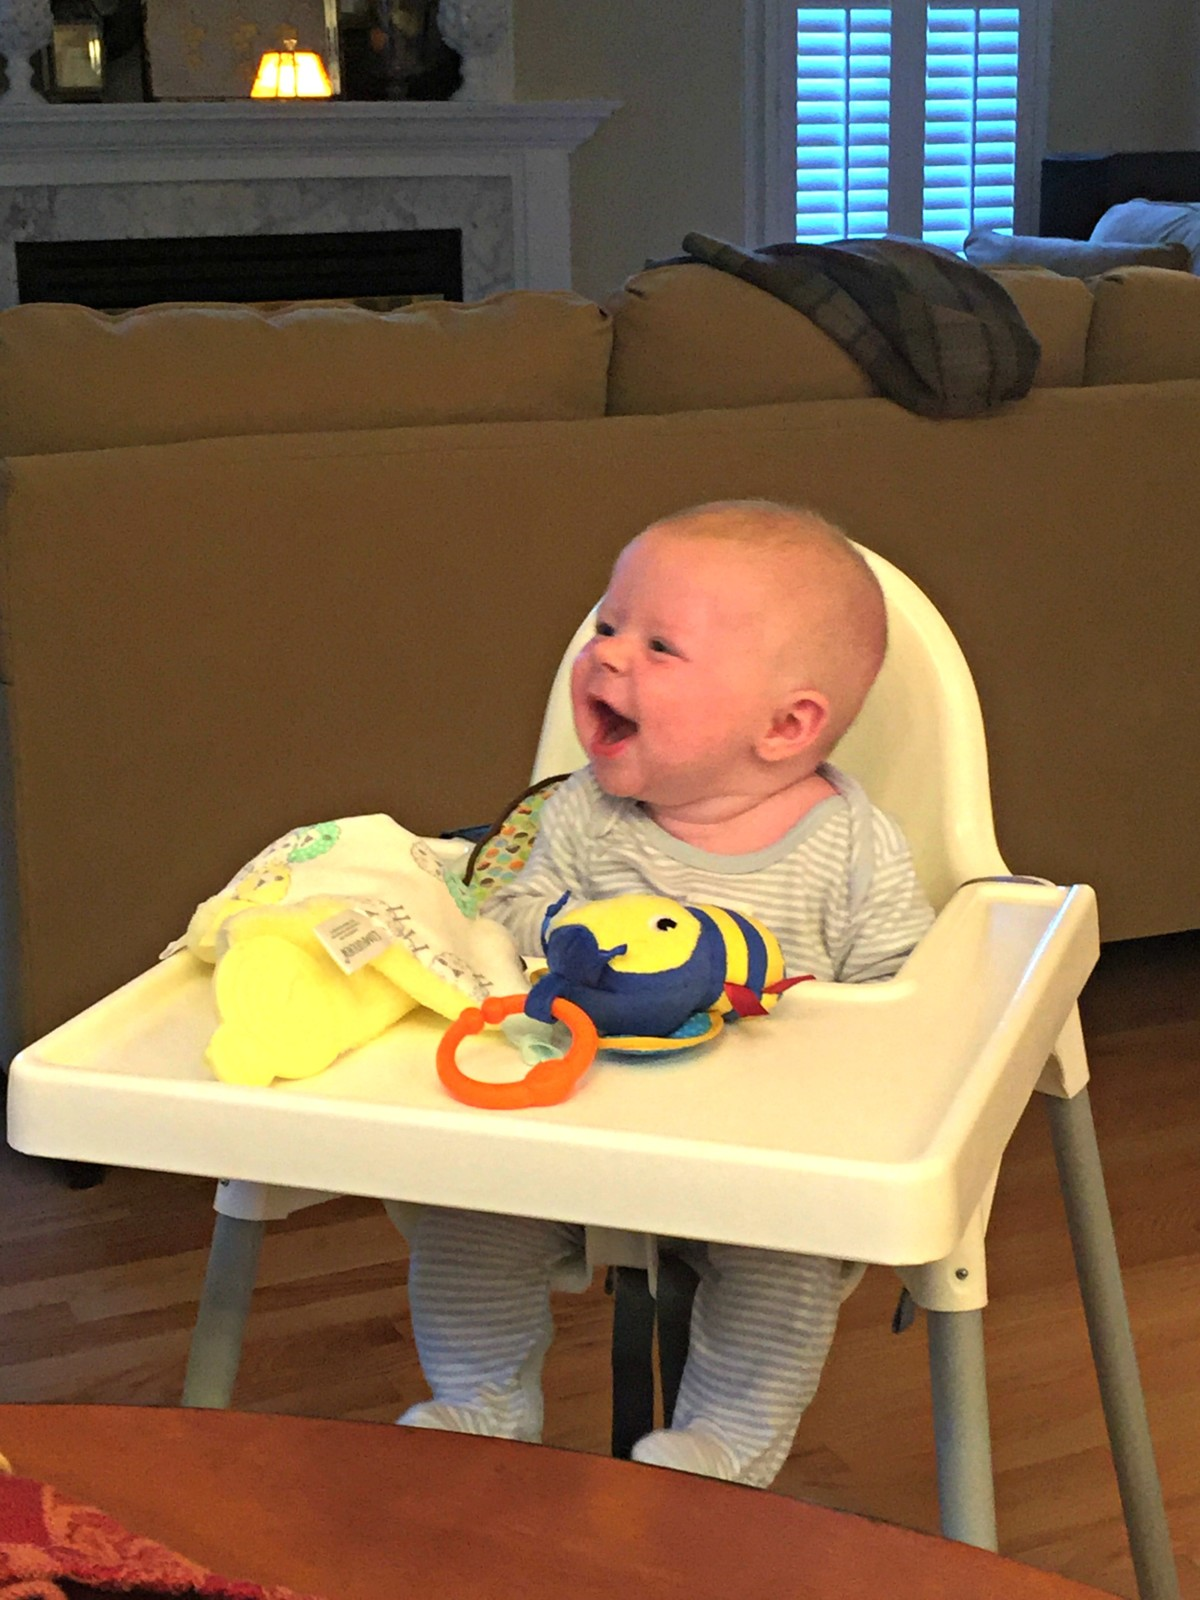 Trying out the high chair for the first time.